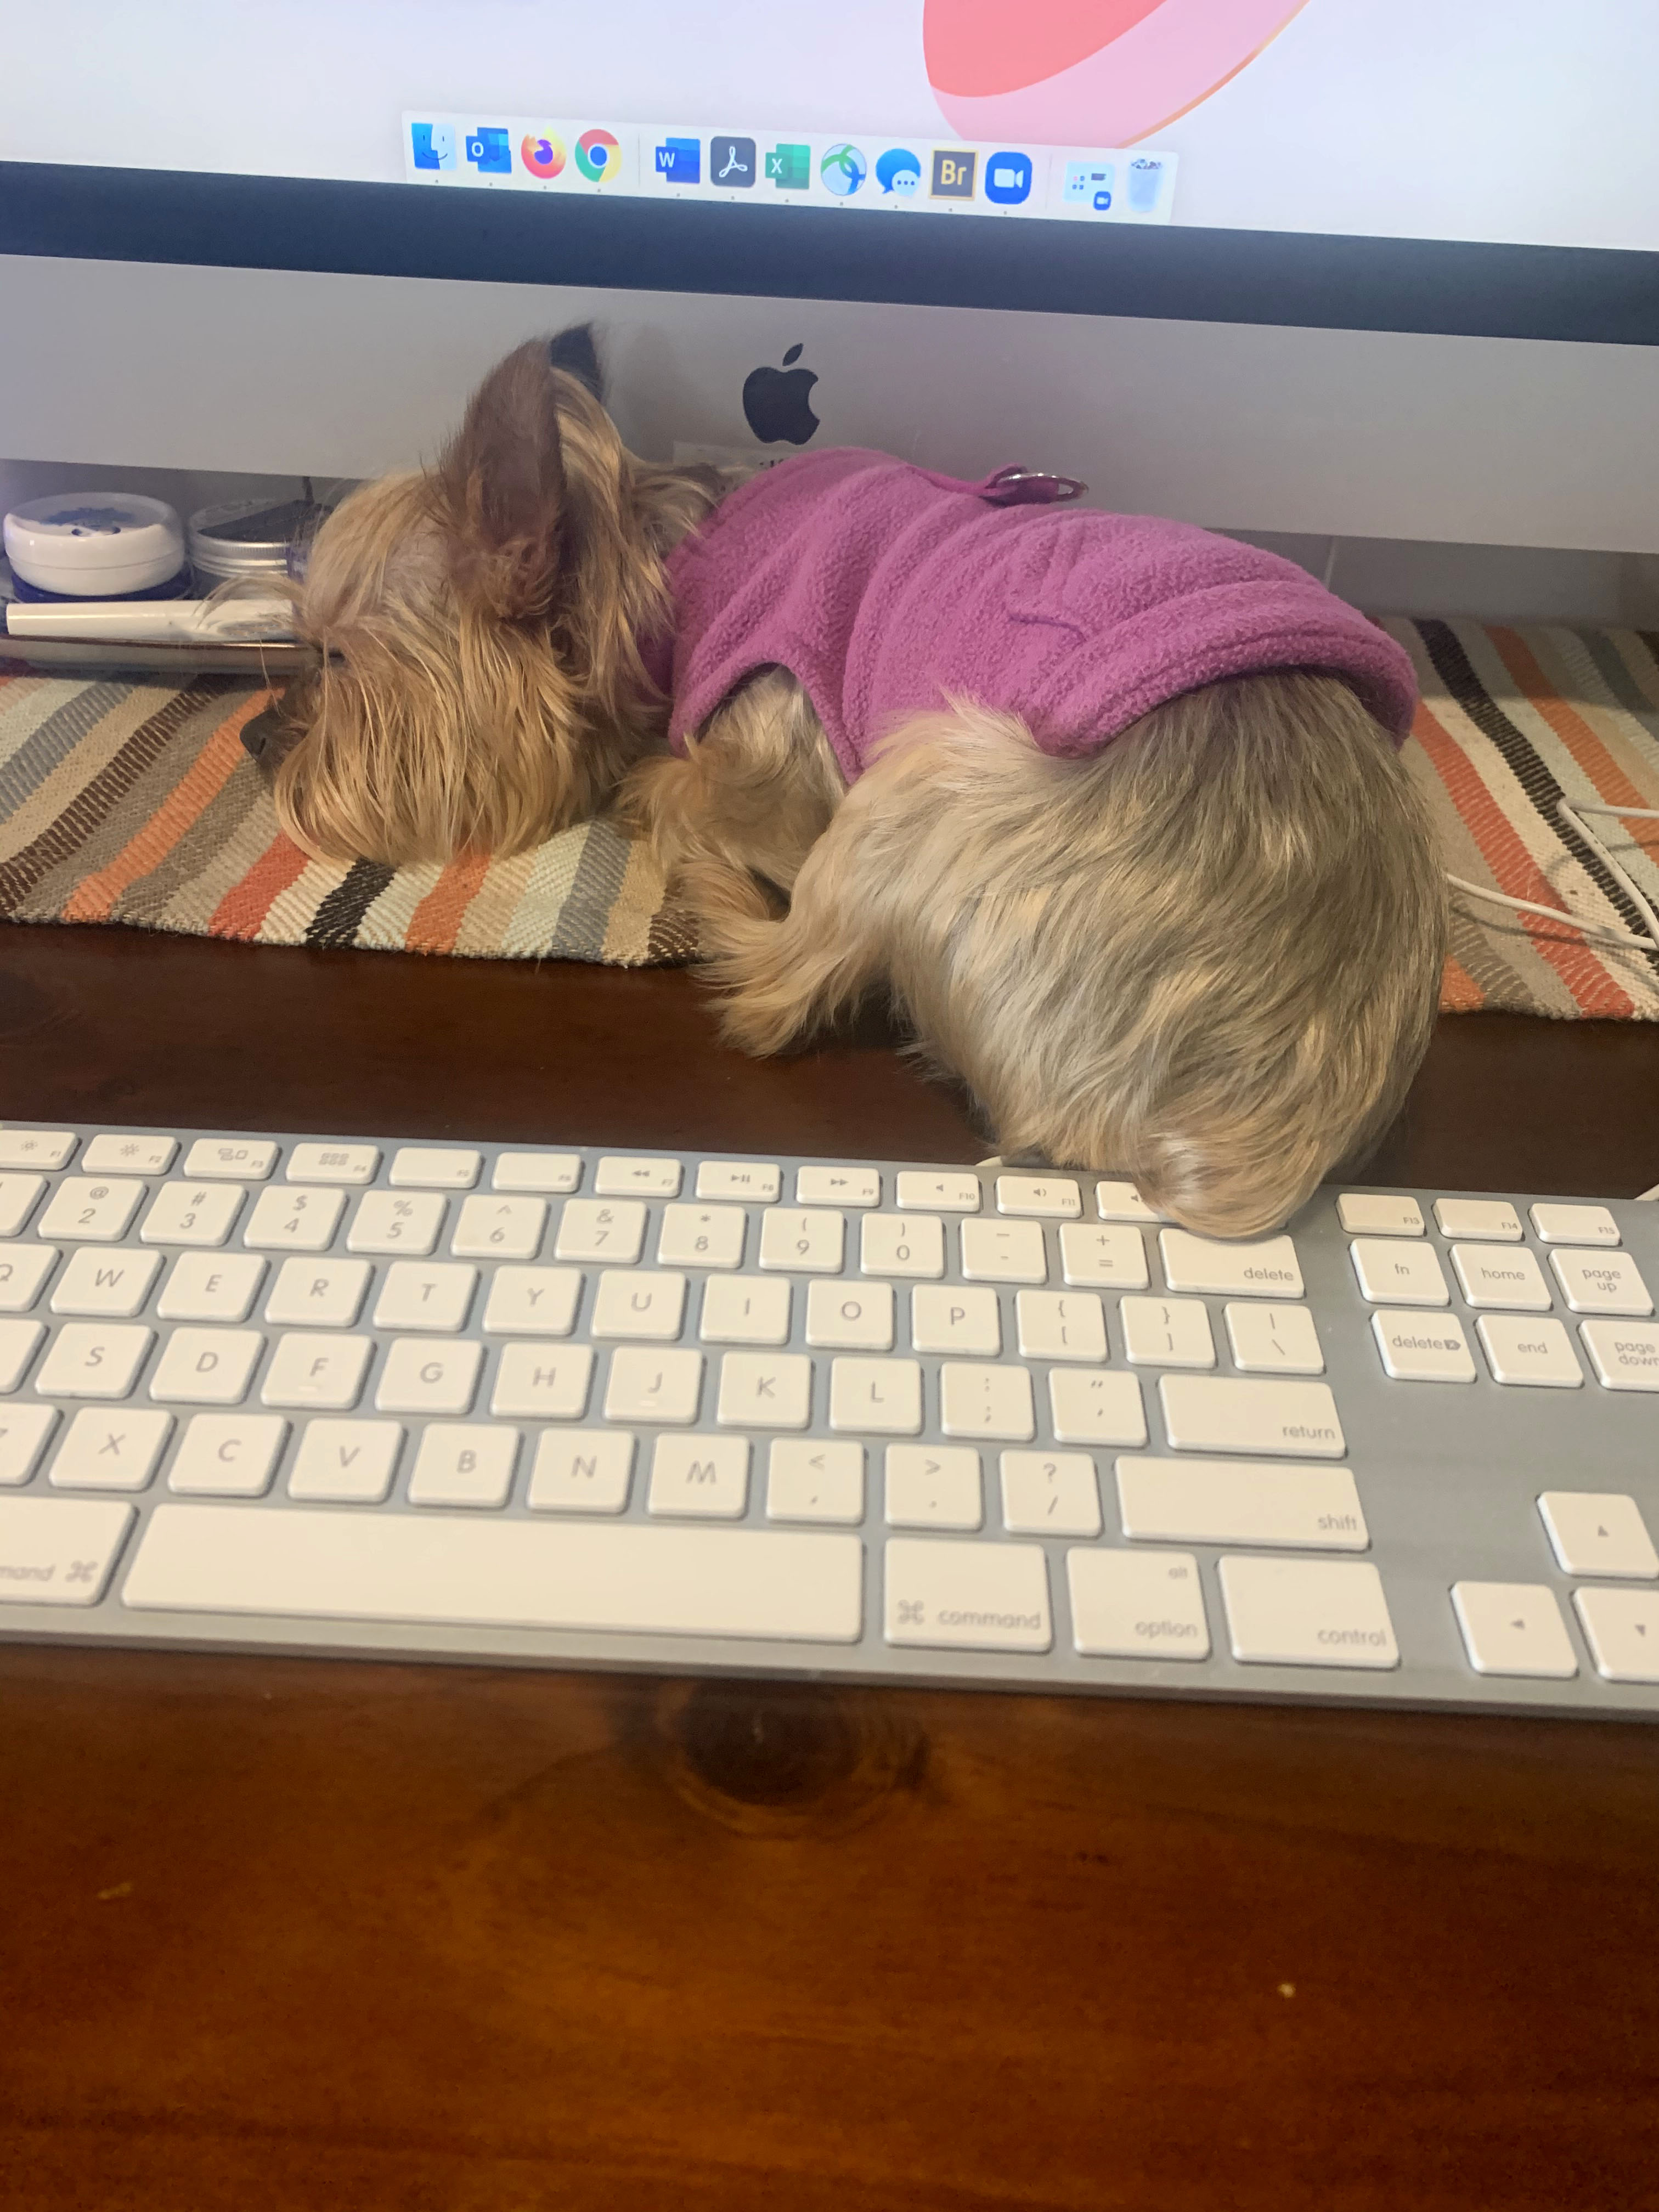 A small dog sits in front of a computer.